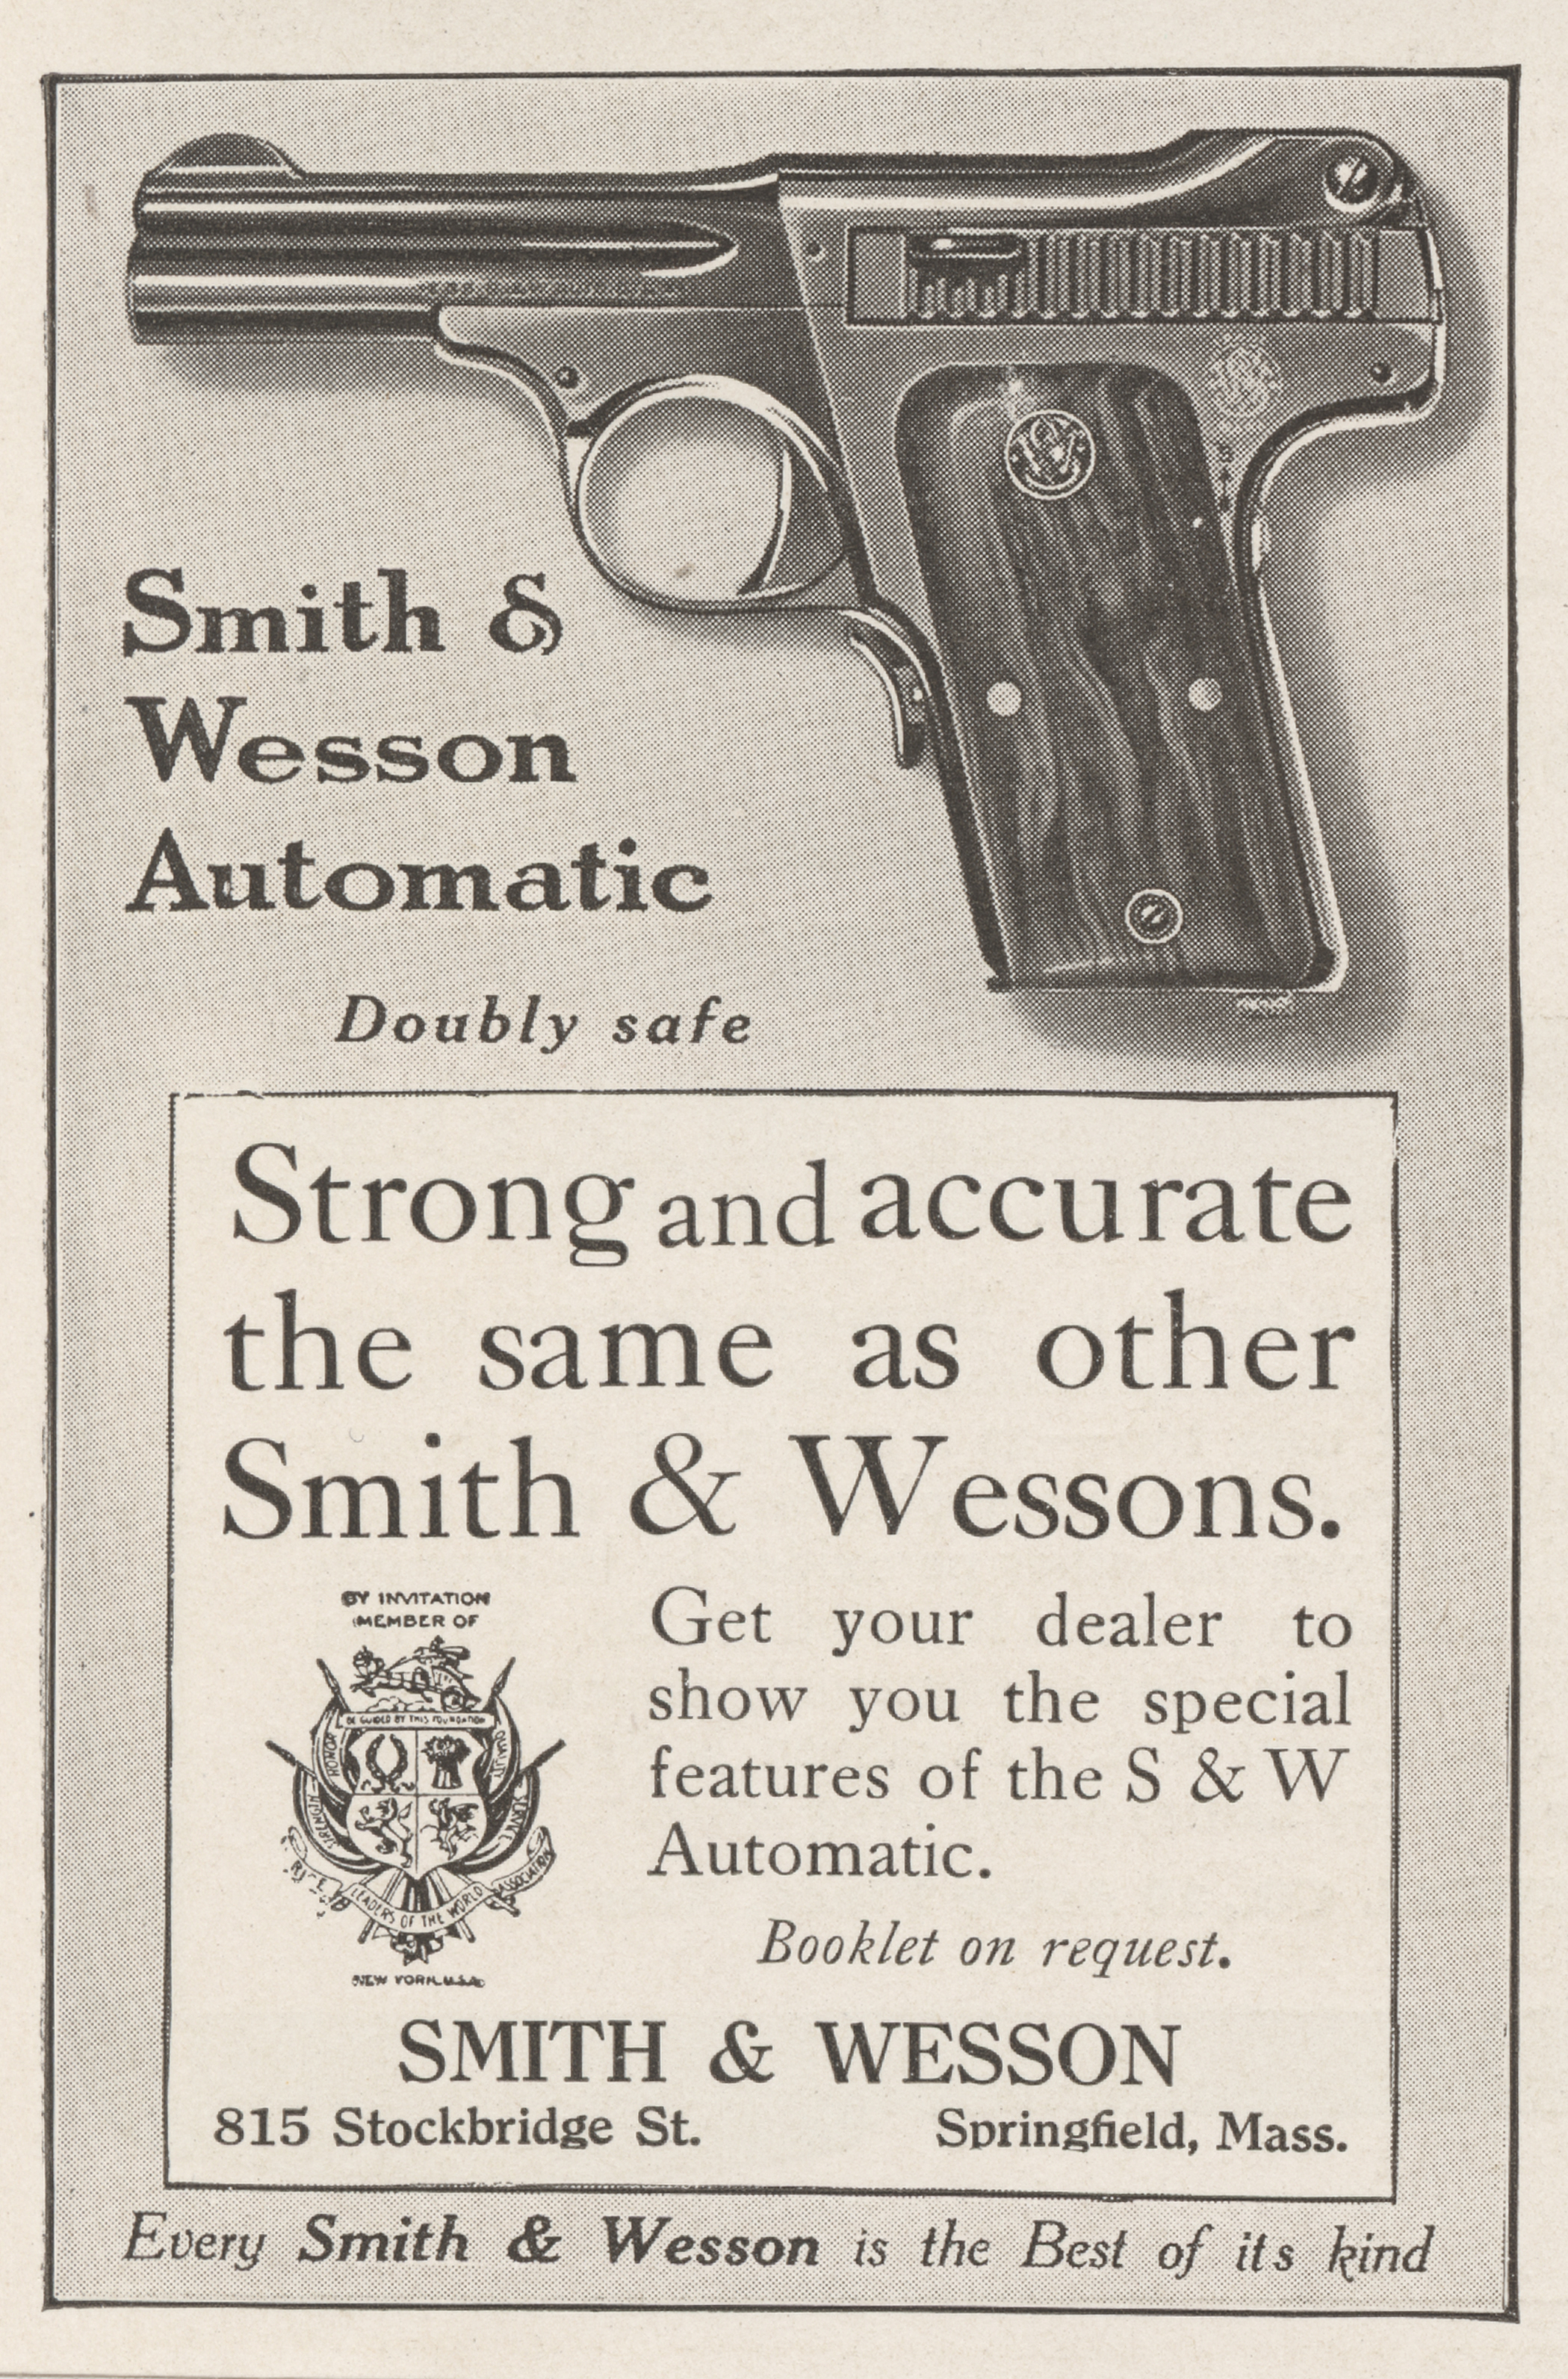 38 Best Halloween Costumes Images On Pinterest: History Of Smith & Wesson